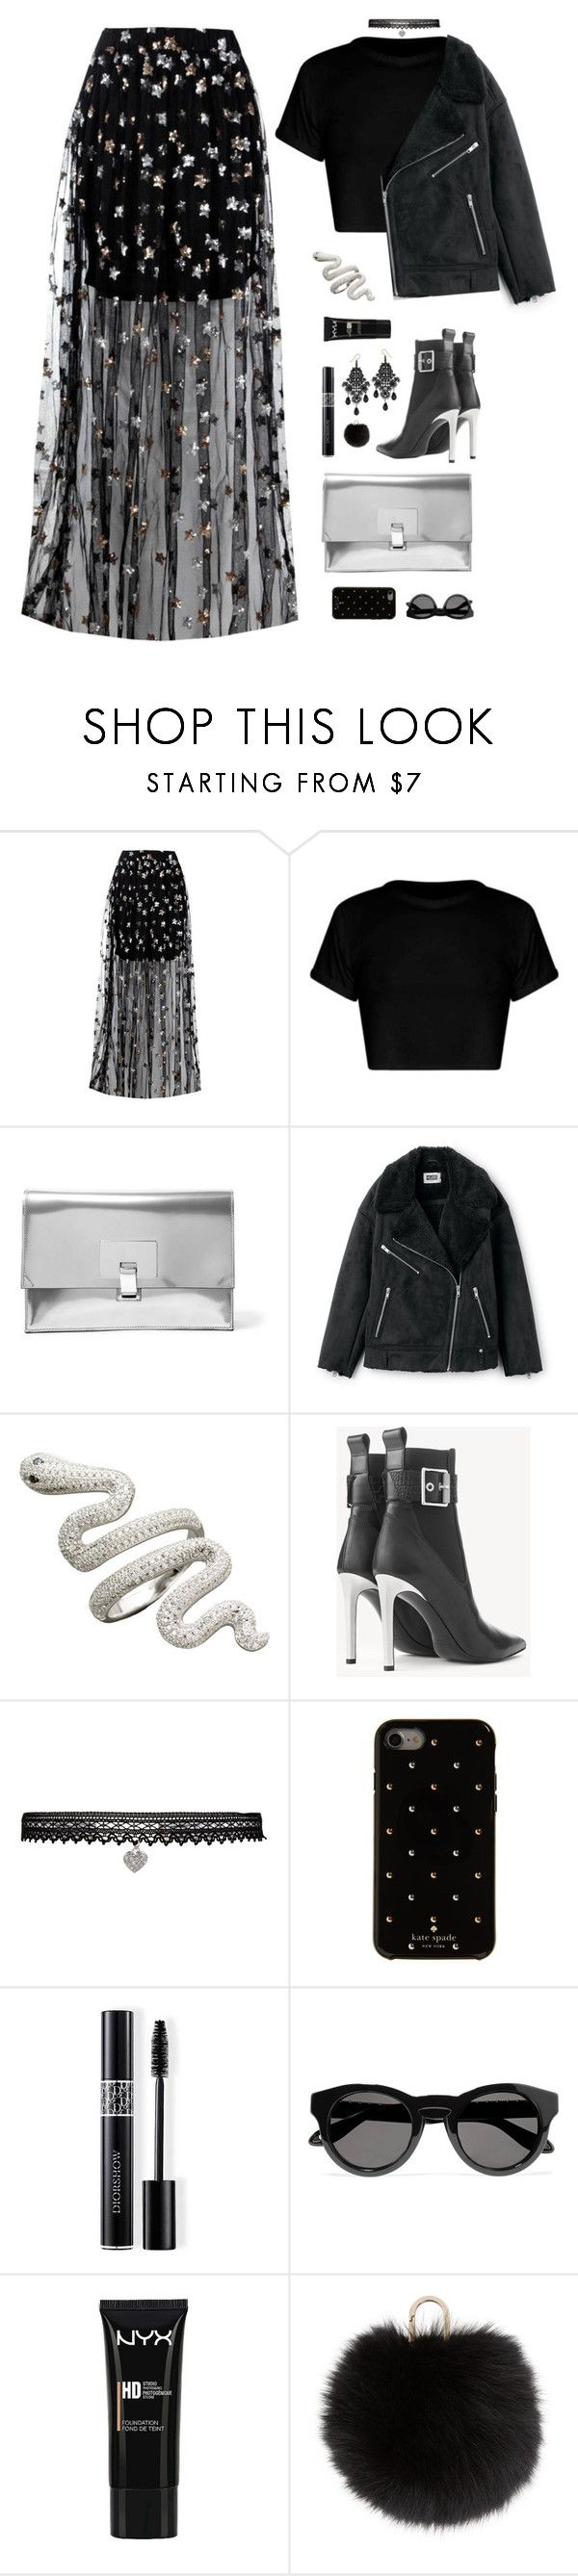 """""""crying in the club"""" by ishipbullshit ❤ liked on Polyvore featuring Boohoo, Proenza Schouler, rag & bone, Betsey Johnson, Kate Spade, Christian Dior, Givenchy, NYX, Yves Salomon and afterparty"""